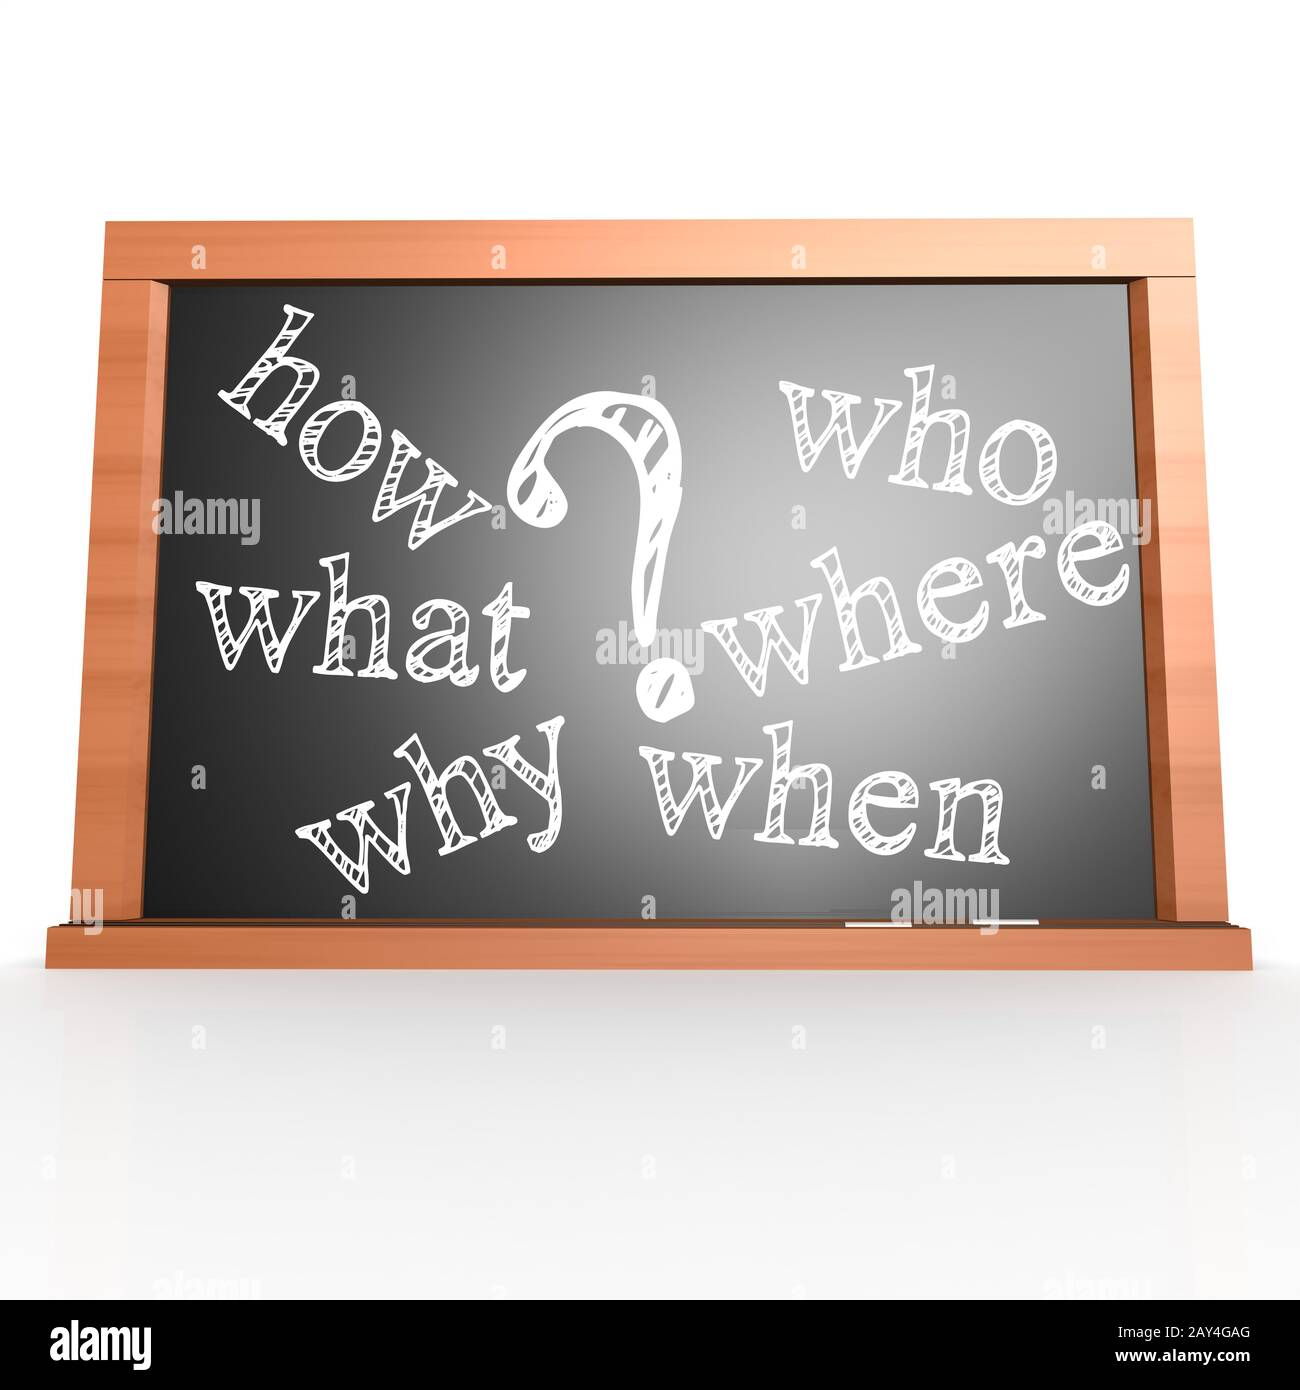 Where, When, What, Who, Why, How written with Chalk on Blackboard Stock Photo